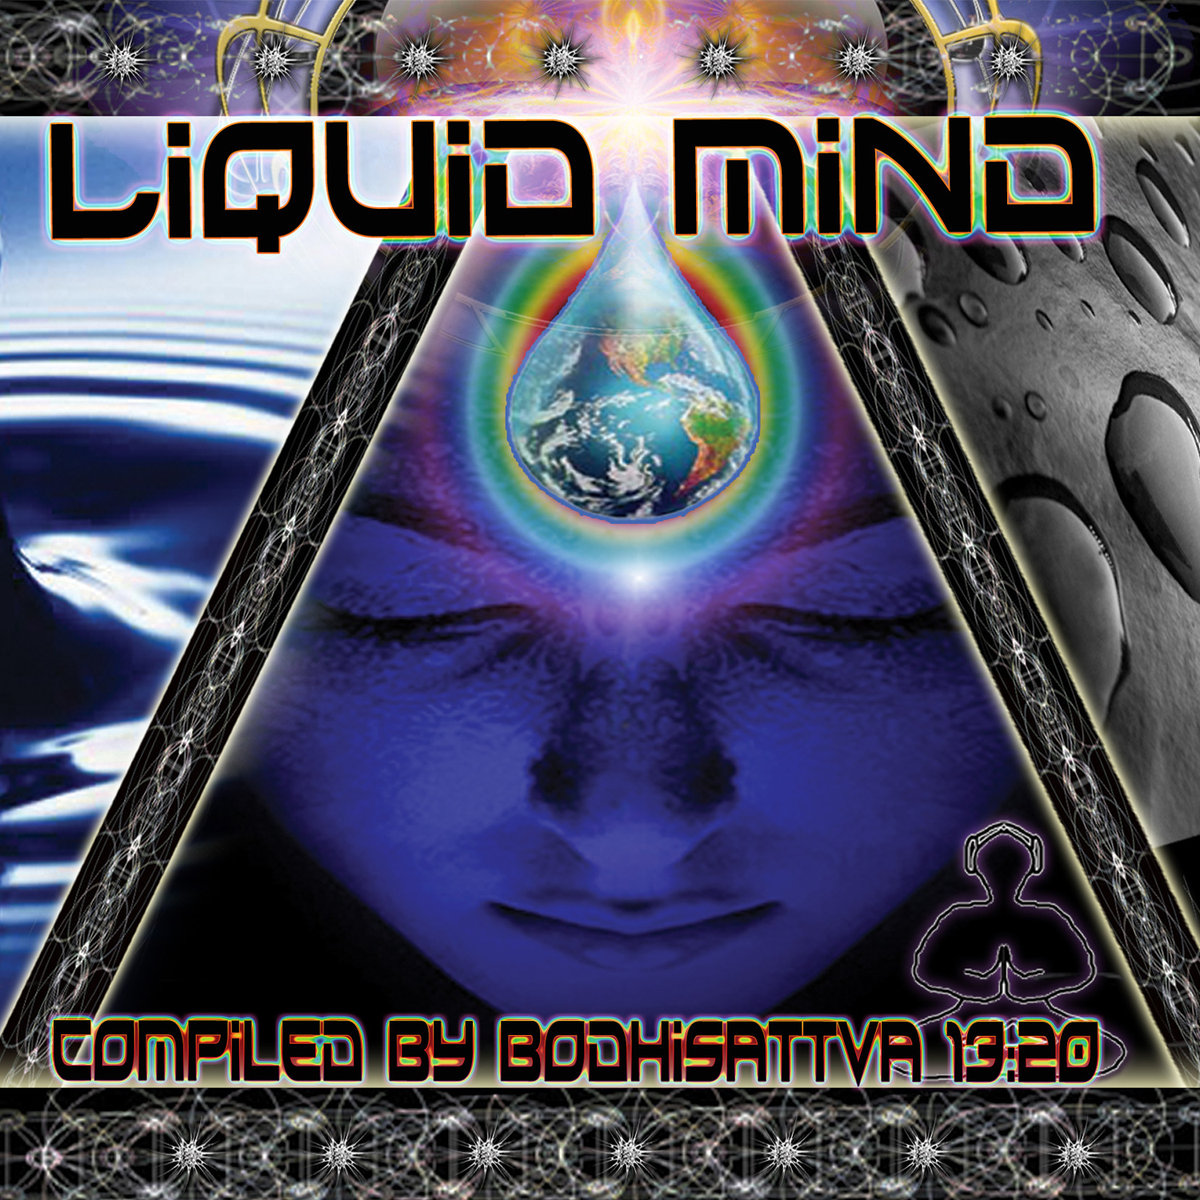 Various Artists - Liquid Mind (Compiled by Bodhisattva 13:20) @ 'Various Artists - Liquid Mind (Compiled by Bodhisattva 13:20)' album (electronic, and)